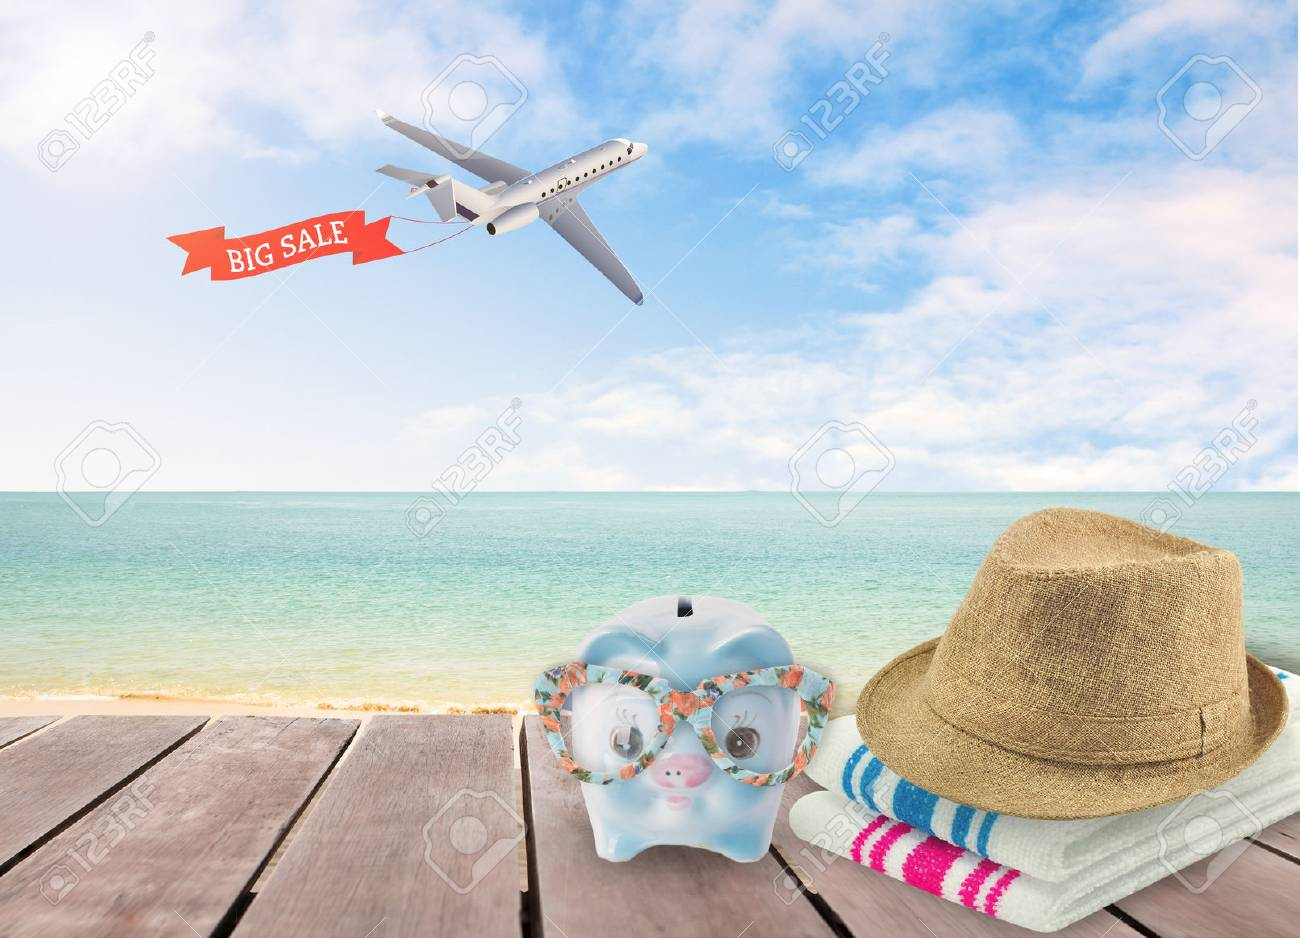 Forum on this topic: Save Big on Beach Vacations, save-big-on-beach-vacations/